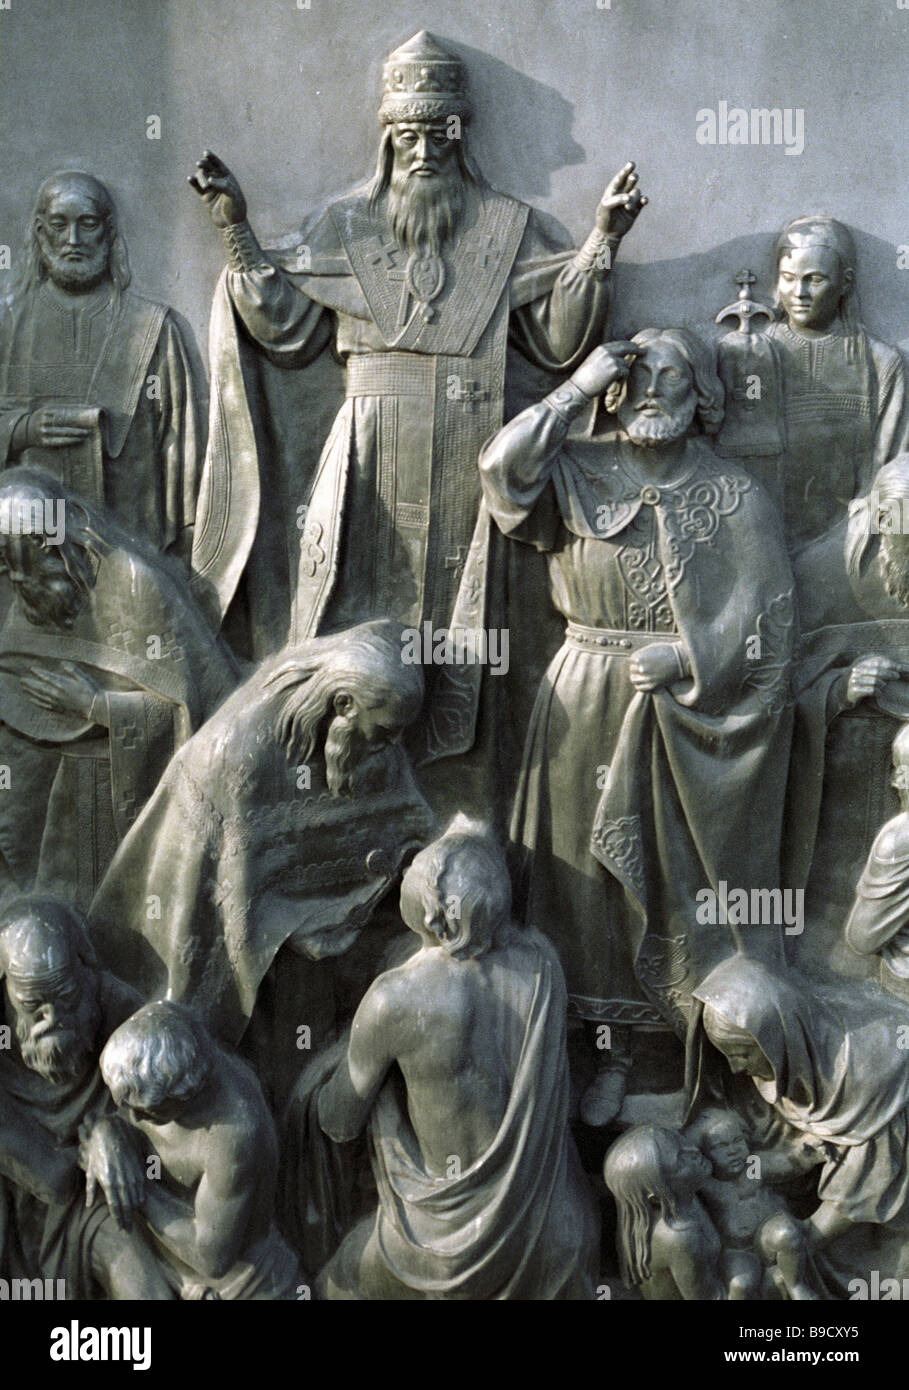 Detail of The Baptism of Russia one of the high reliefs on the pedestal of the Prince Vladimir monument in Kiev - Stock Image